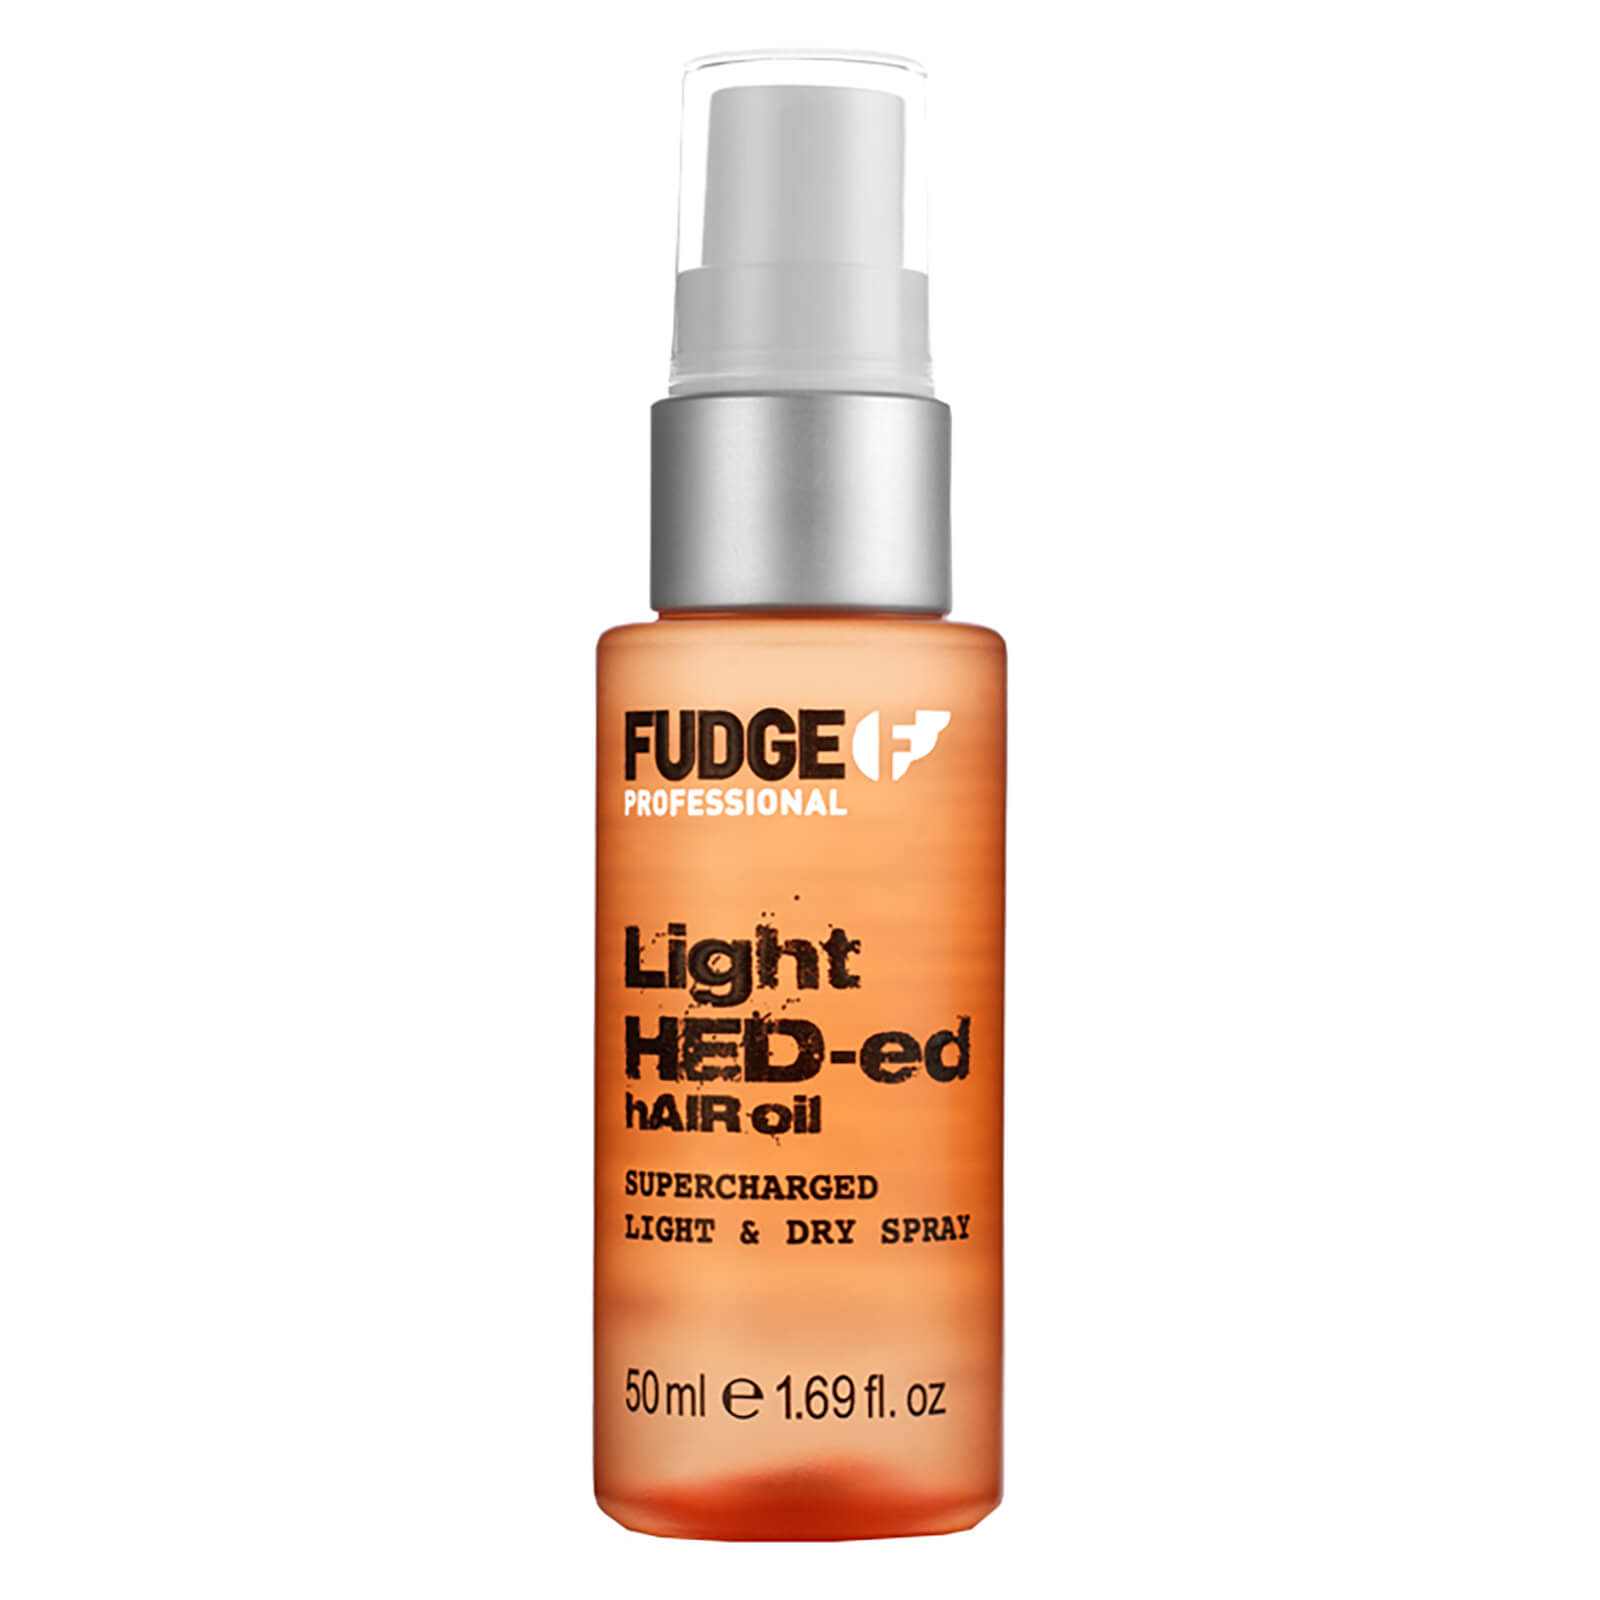 Fudge Light Hed-Ed Oil Supercharged Light and Dry Spray